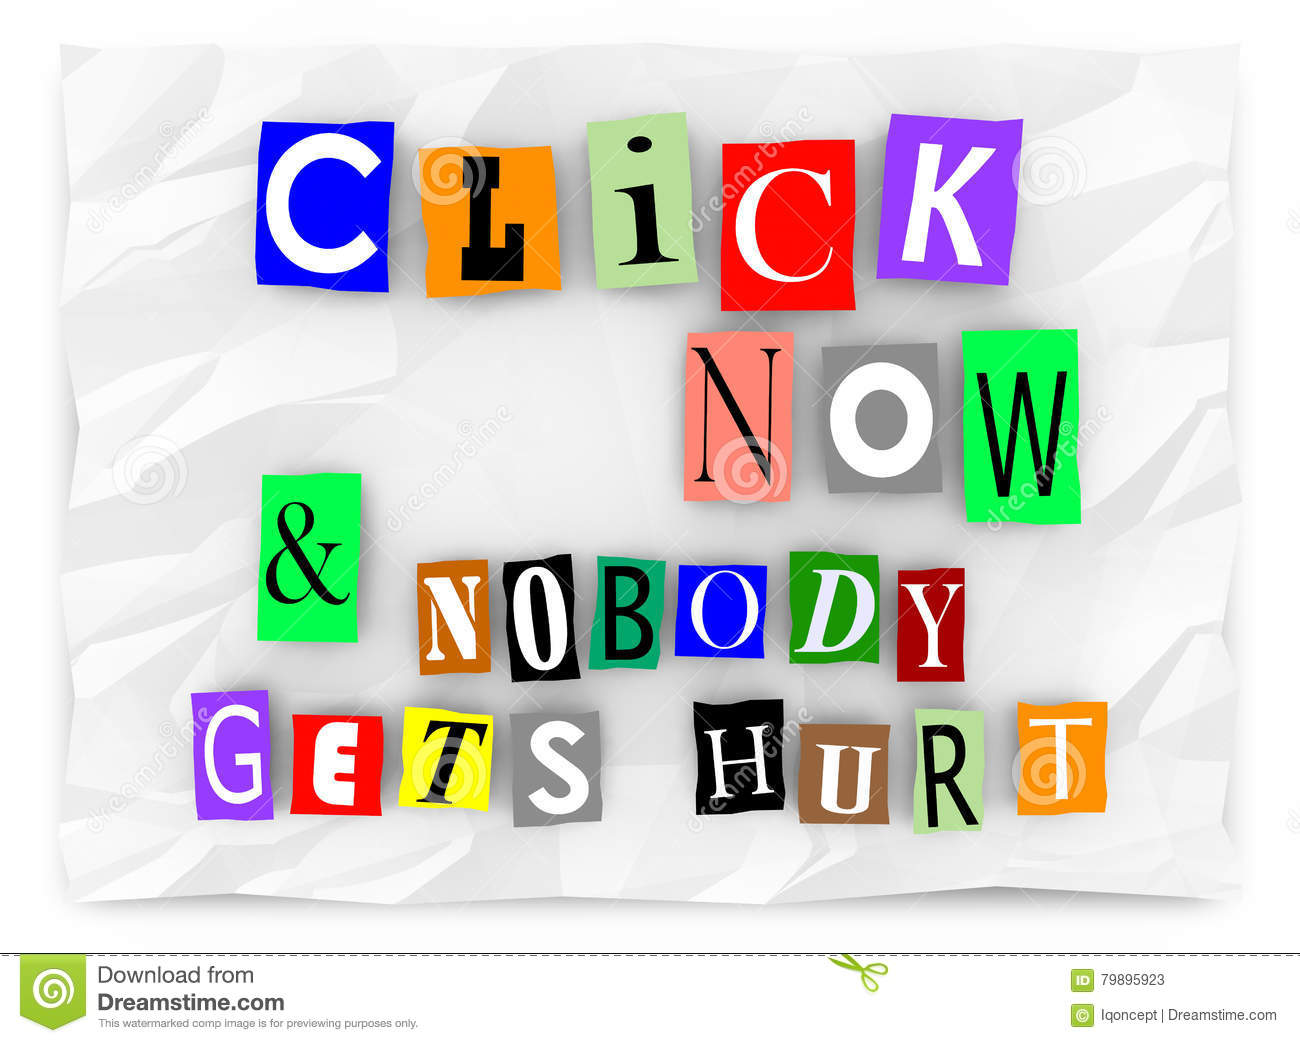 click now and nobody gets hurt online traffic words stock